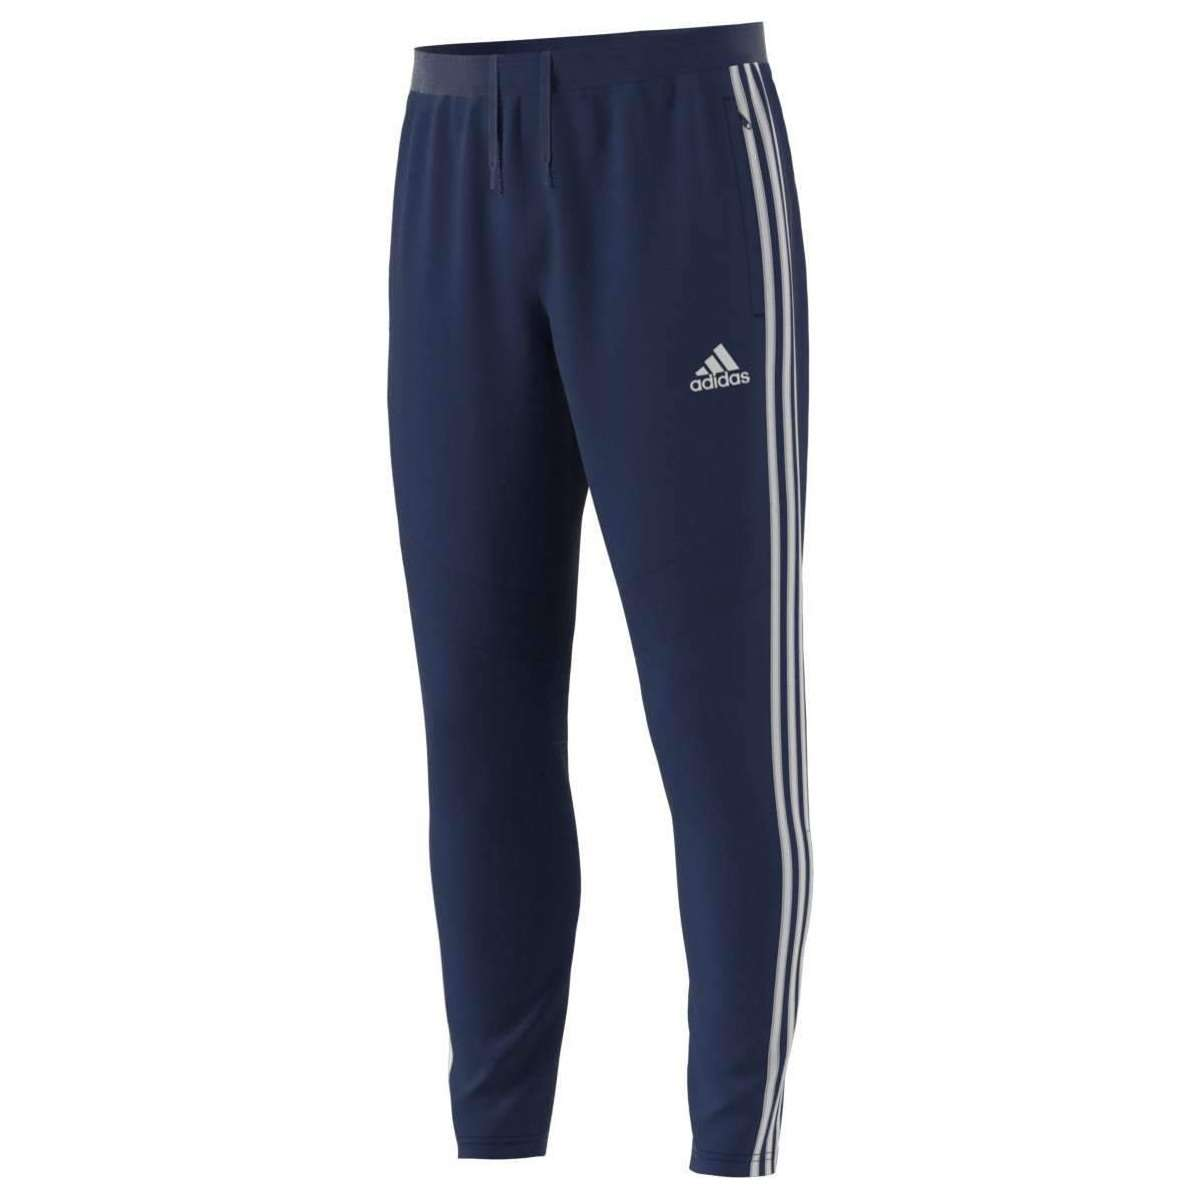 50c63ef41 ... adidas Tiro 19 Men s Training Pants - League Outfitters ...